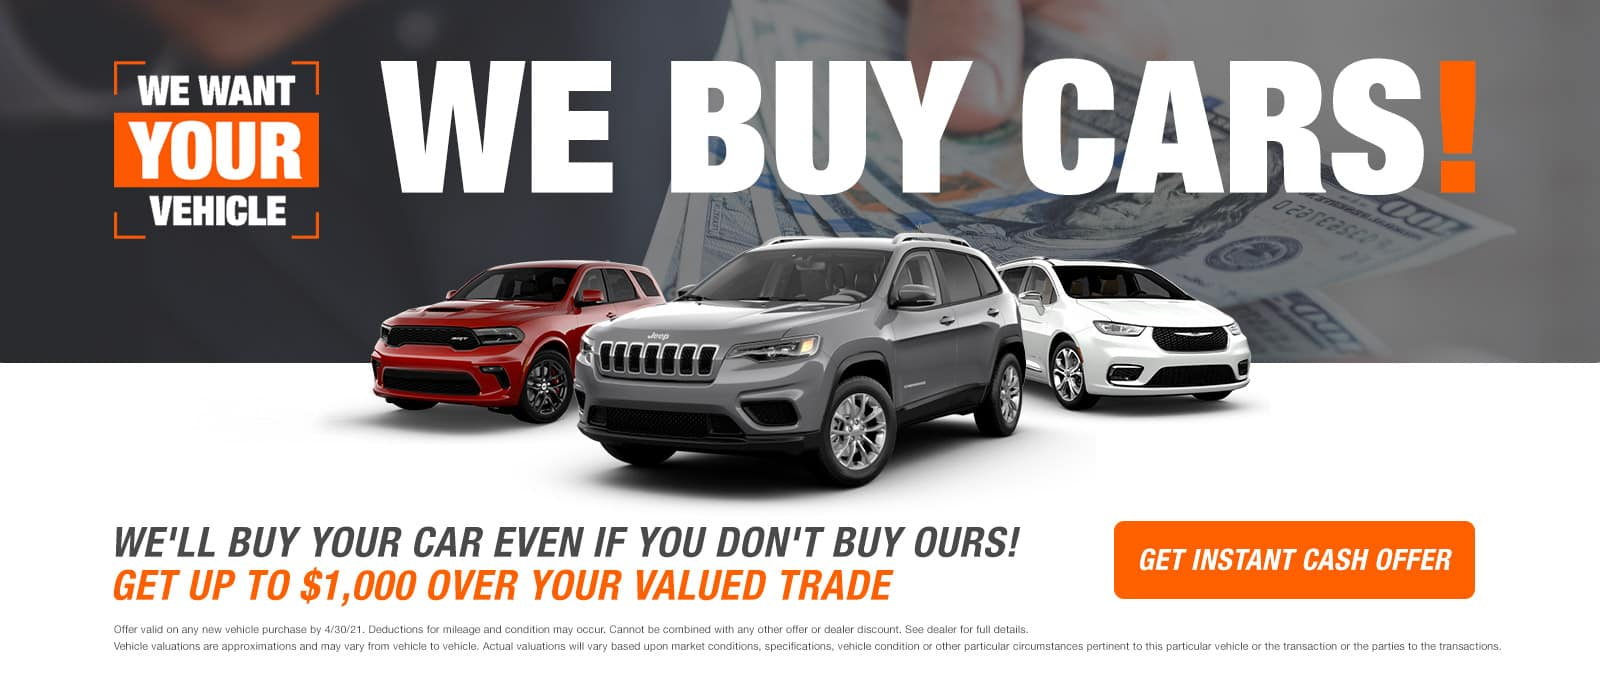 2104_We Buy Cars